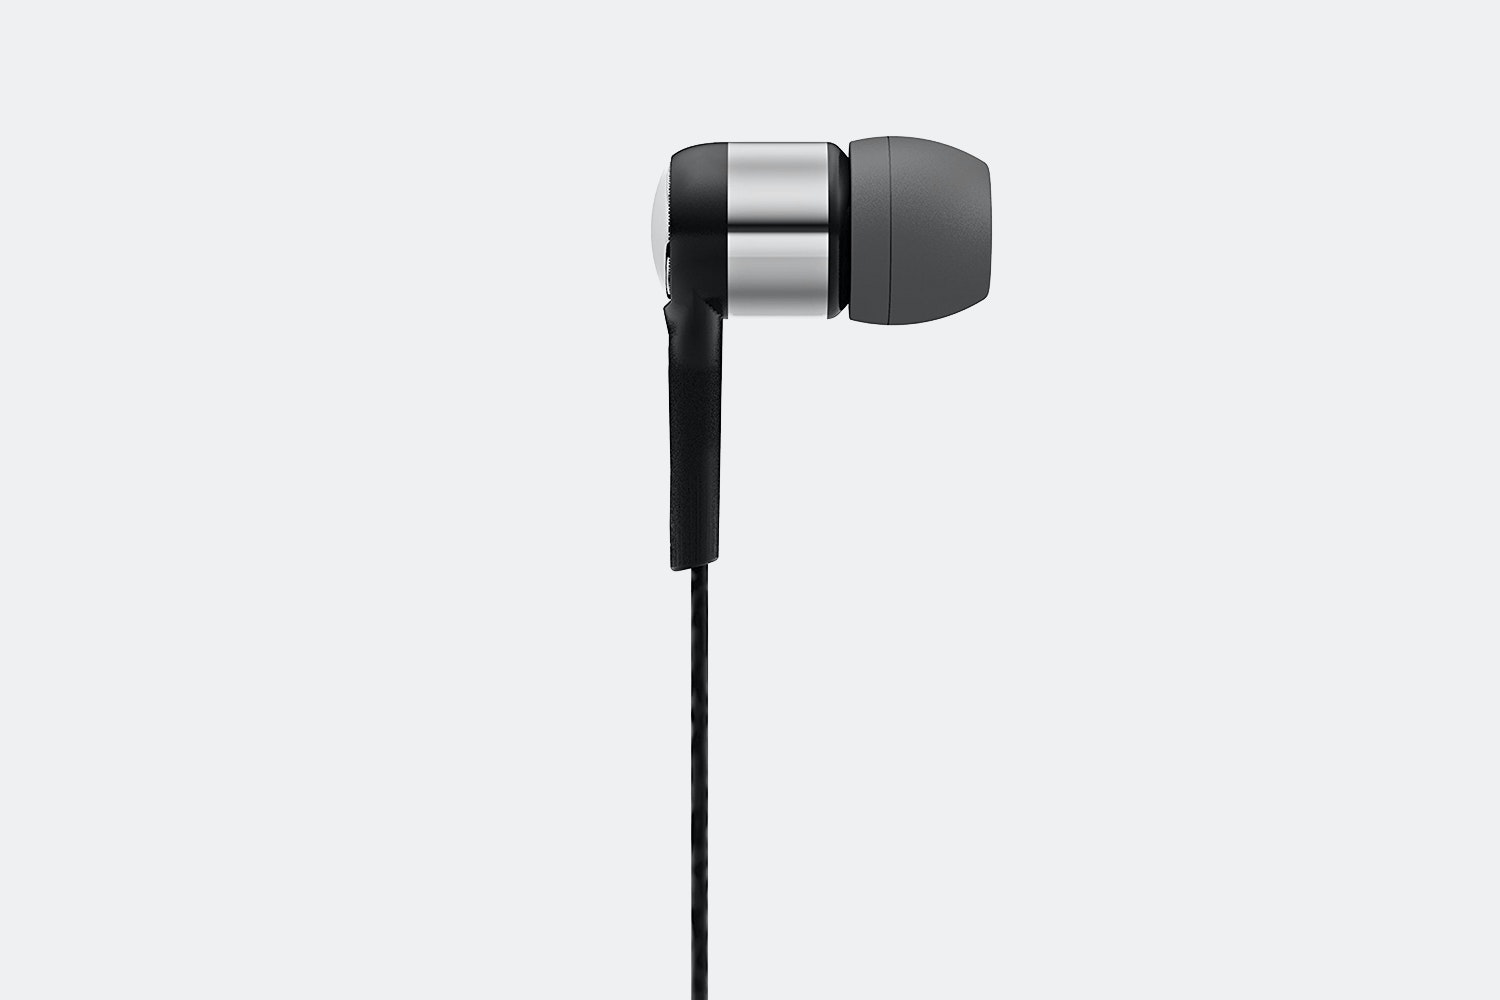 Beyerdynamic MMX 102 iE IEM